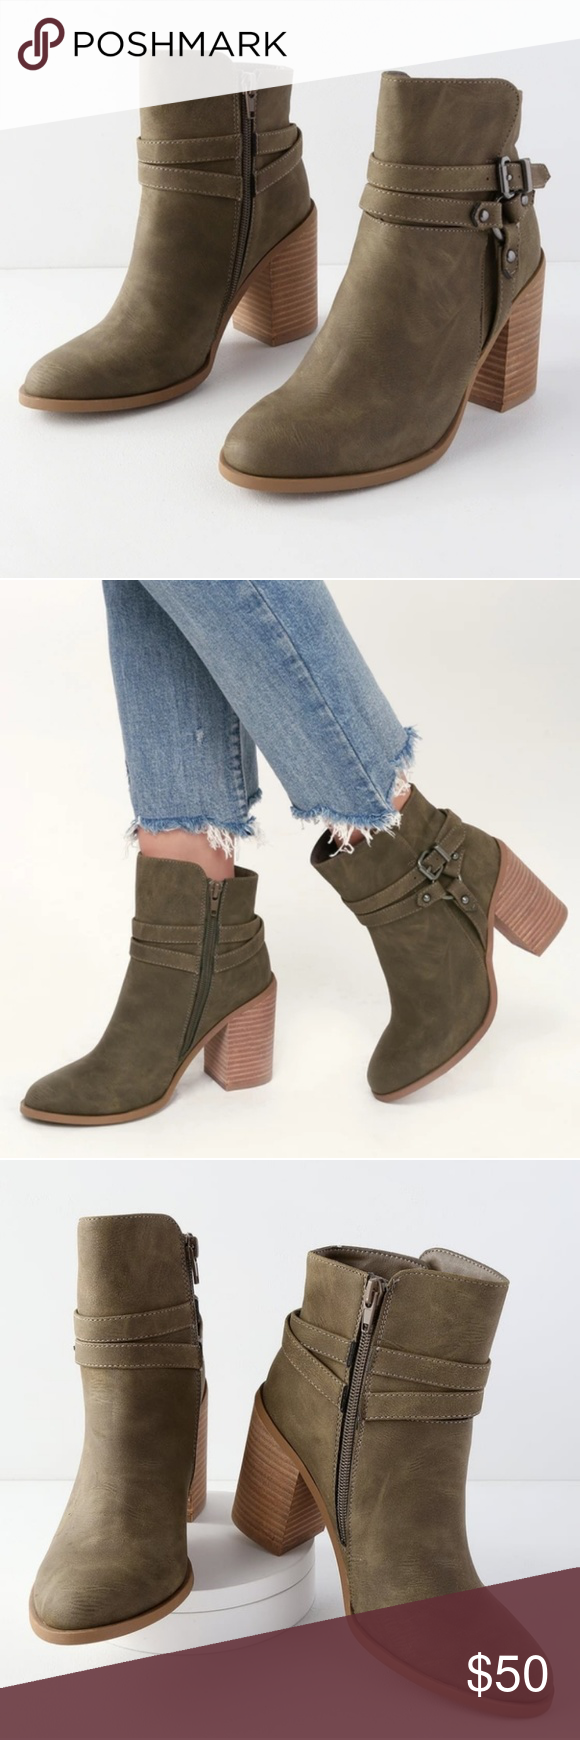 Evelin Still Booties Girl Ankle Box Brand Madden Stone In New doExBrCWQe